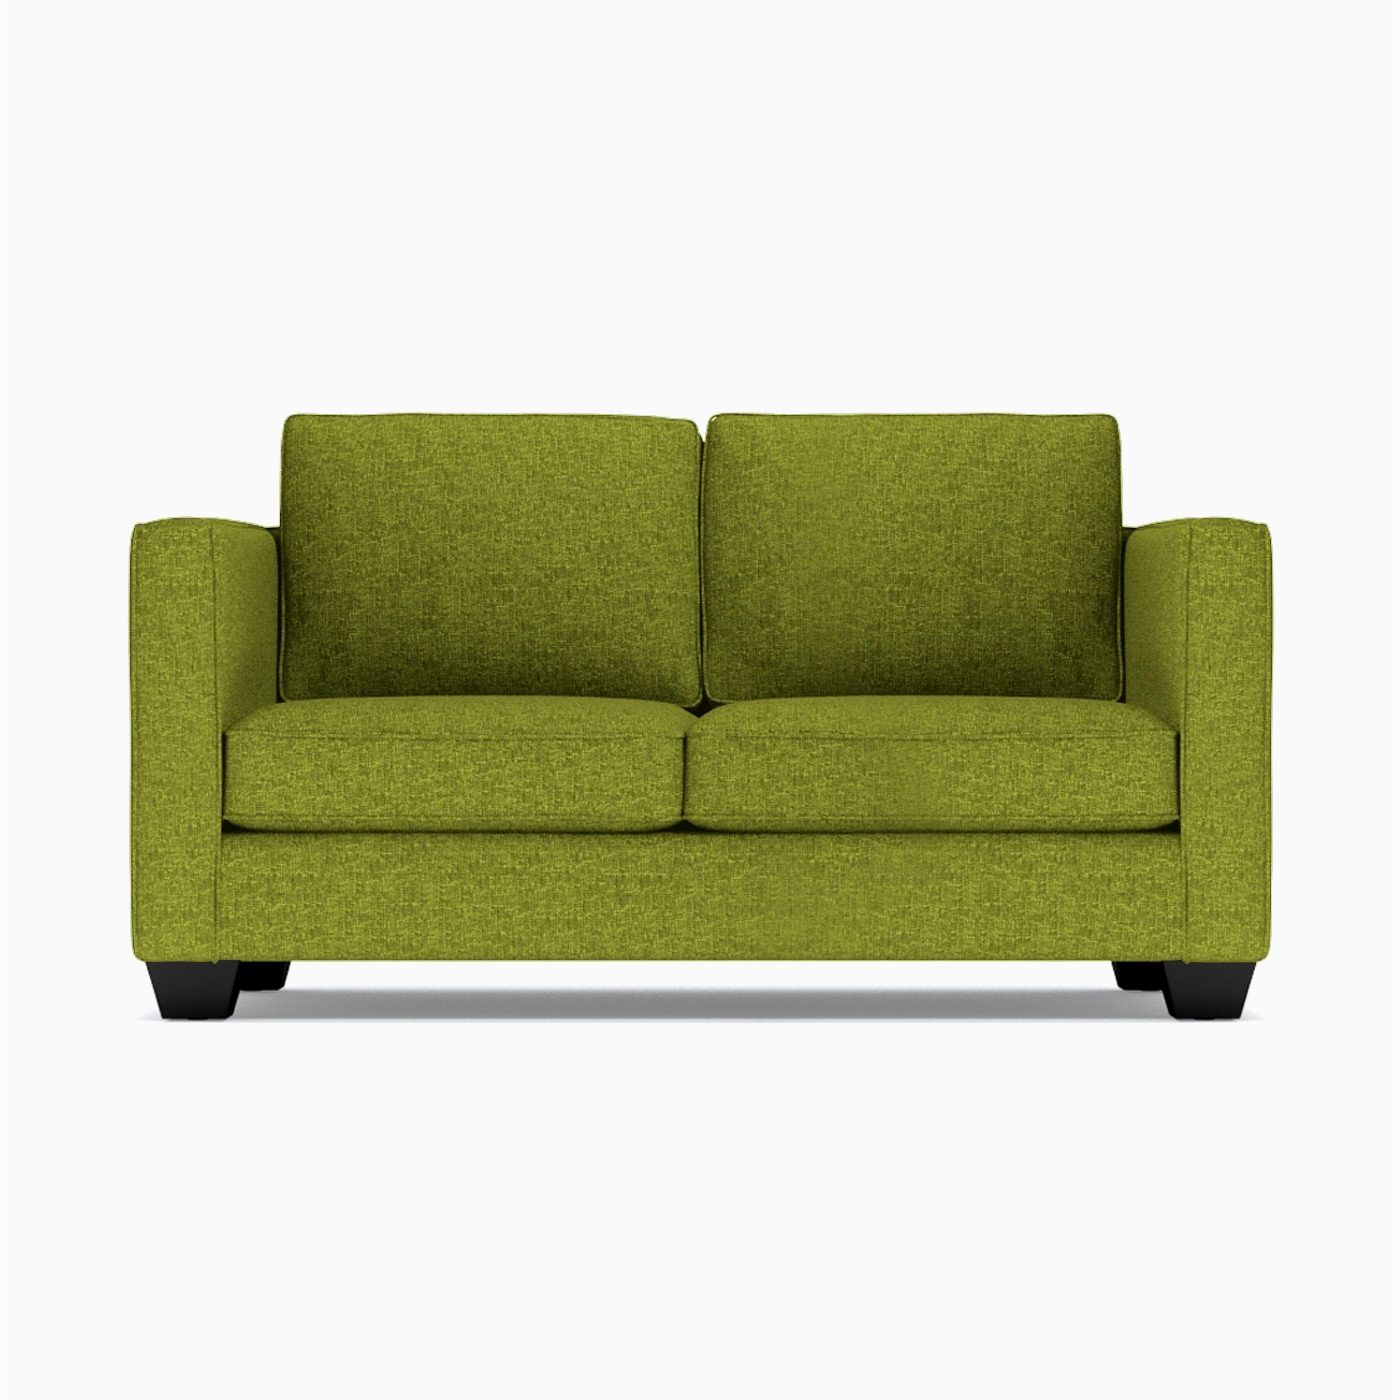 lovely gray chesterfield sofa concept-Luxury Gray Chesterfield sofa Portrait